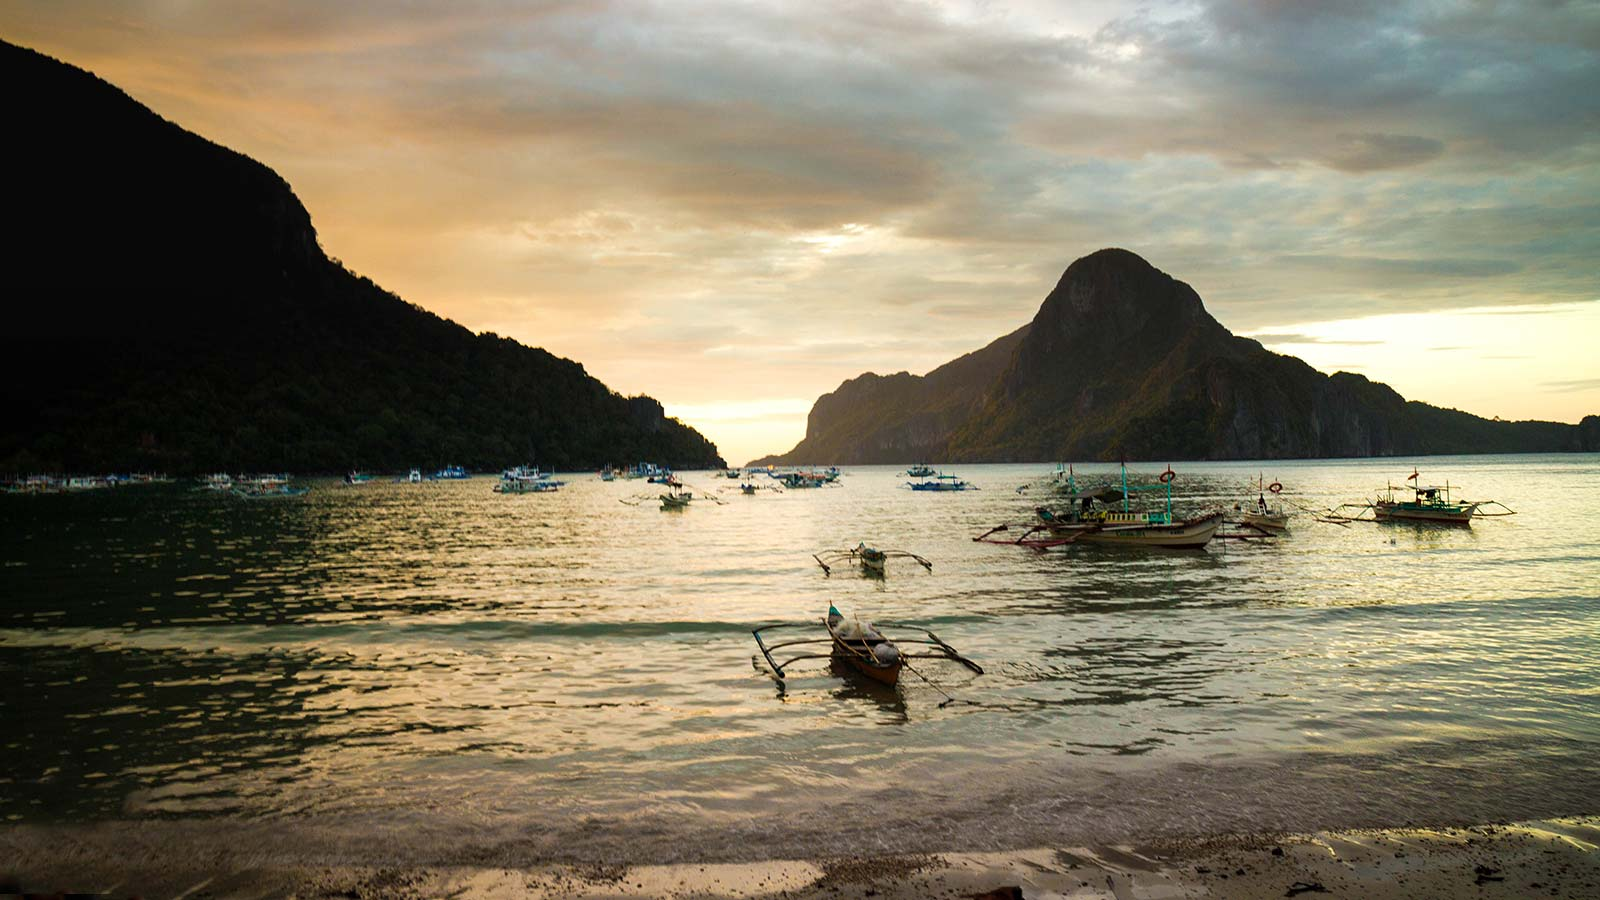 Taking a trip to Palawan? From where to stay, where to eat, and what to see, we have what you need to plan your El Nido family vacation.